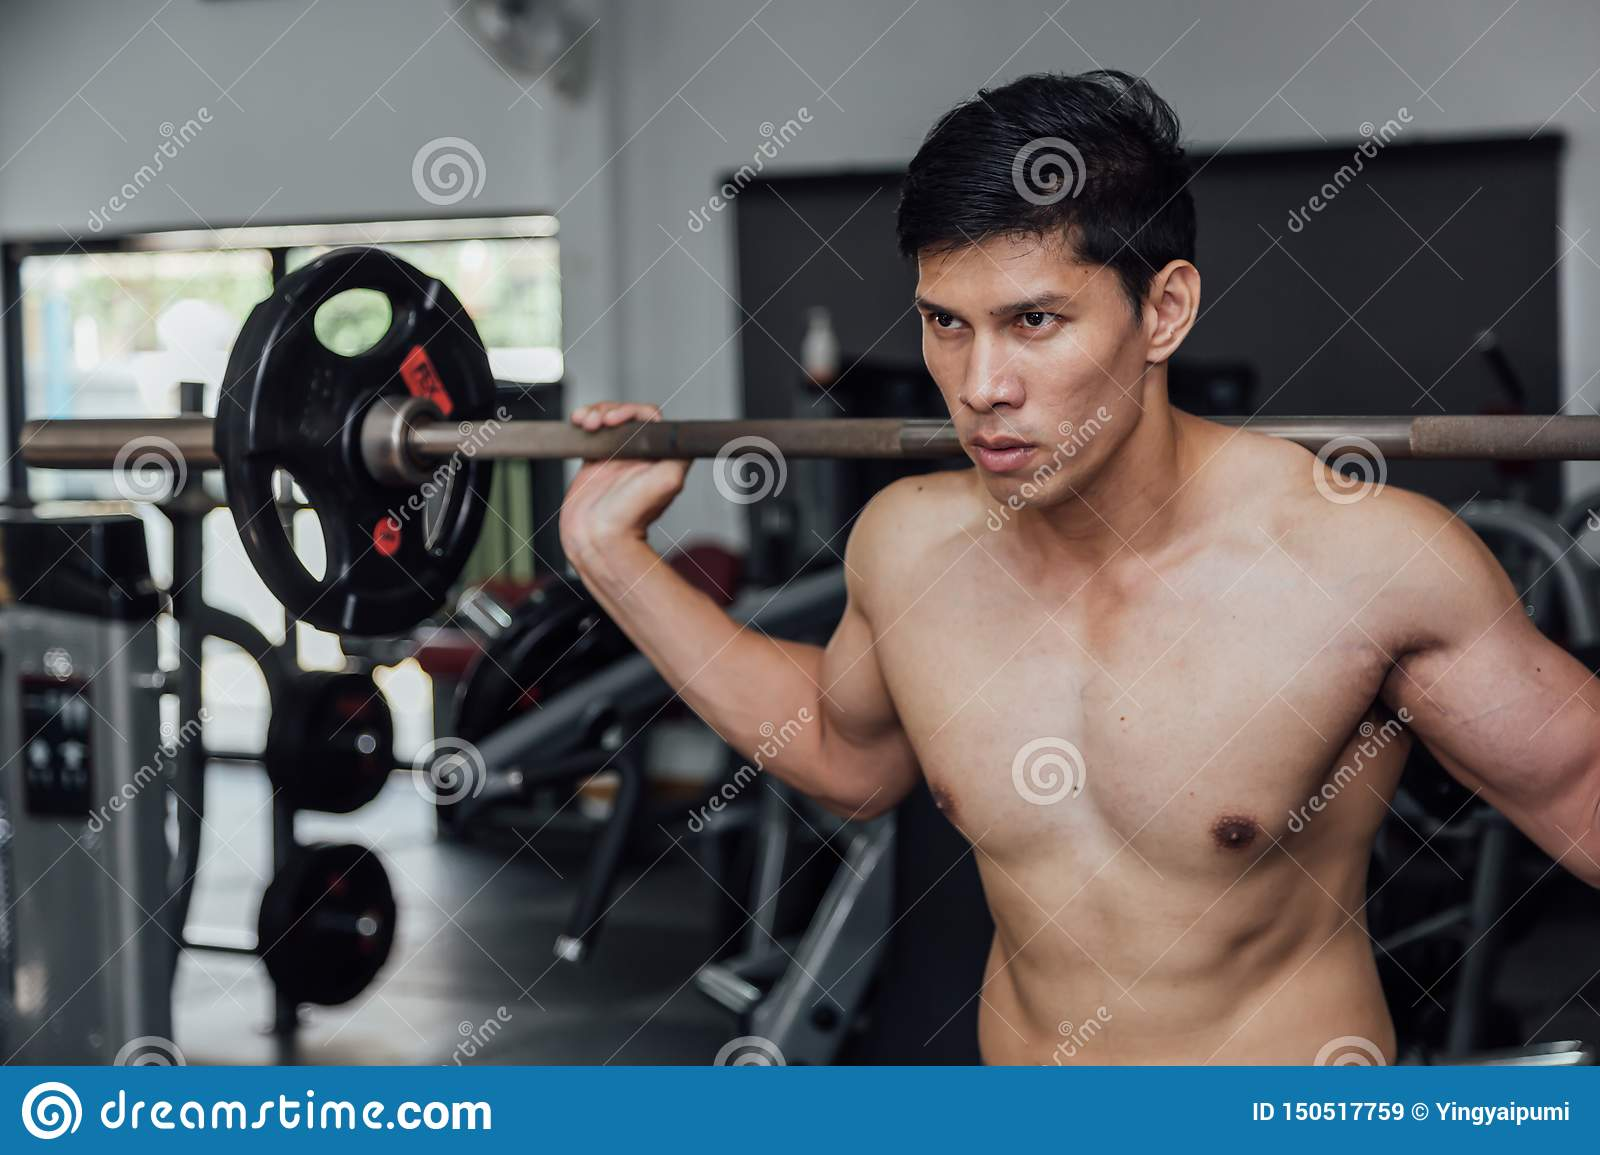 Muscular Man Working Out In Gym Doing Exercises Stock